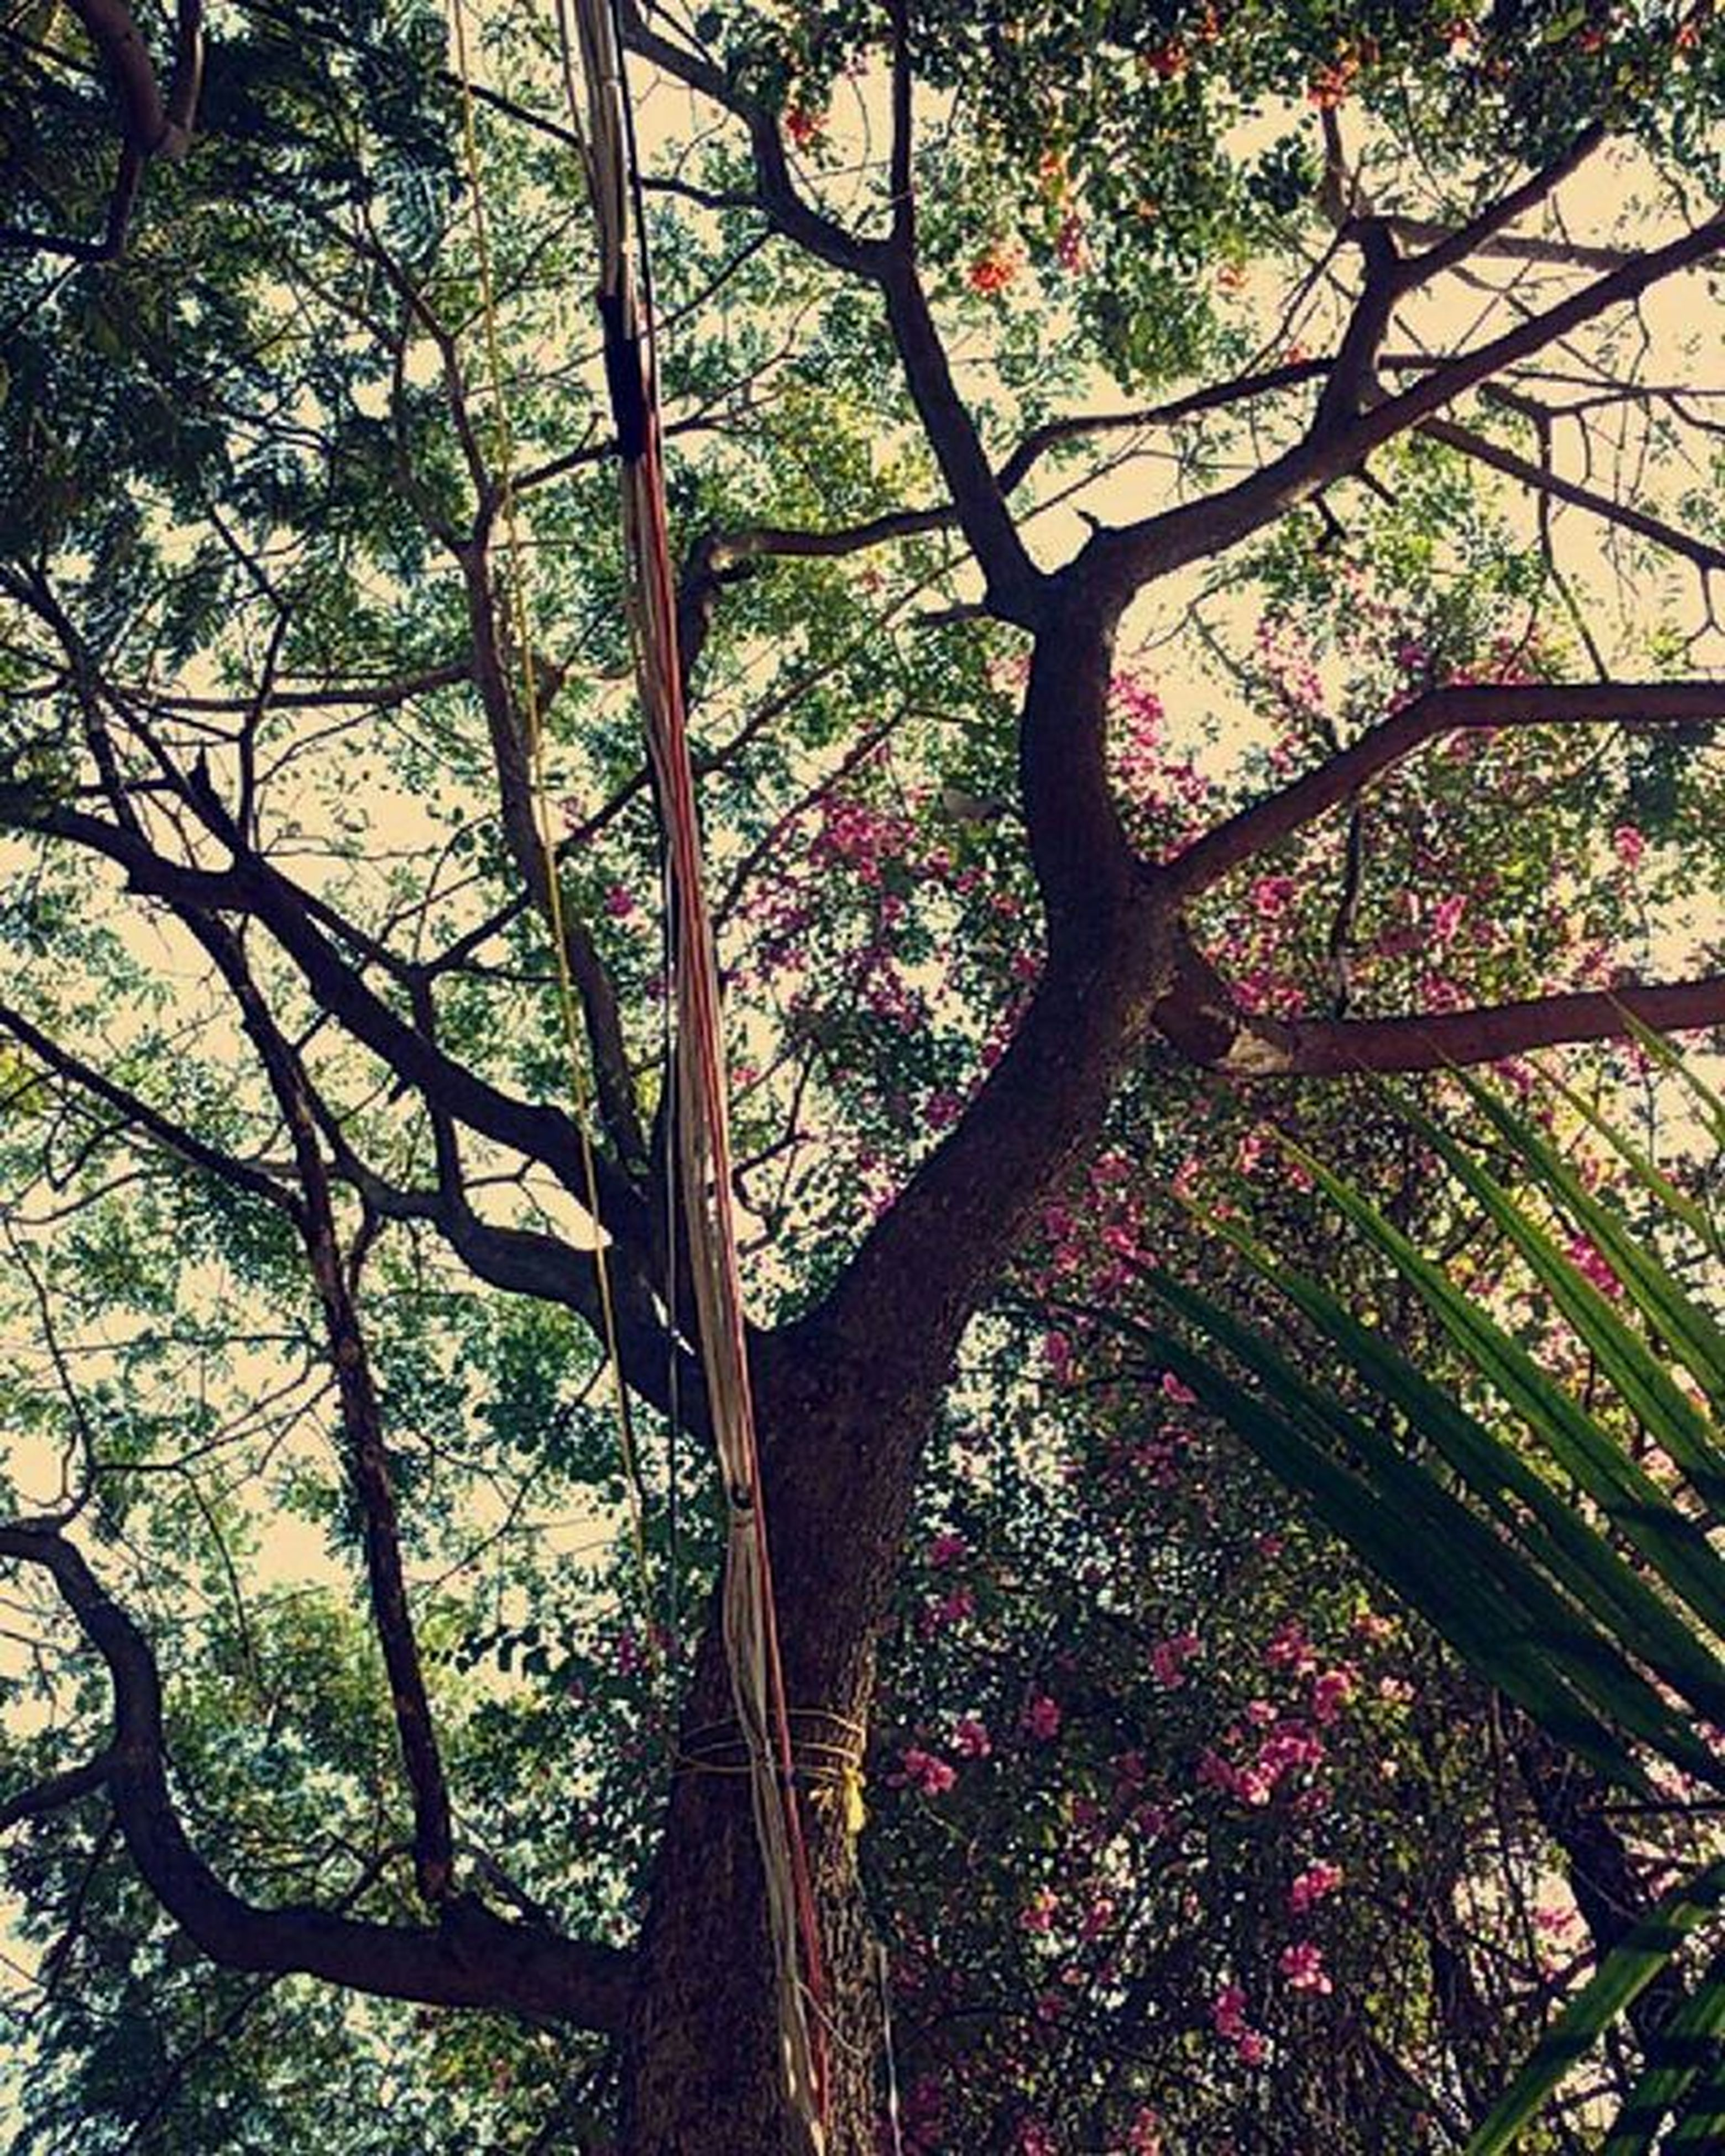 tree, growth, flower, branch, beauty in nature, nature, pink color, freshness, tree trunk, low angle view, plant, blossom, day, fragility, outdoors, park - man made space, in bloom, tranquility, no people, botany